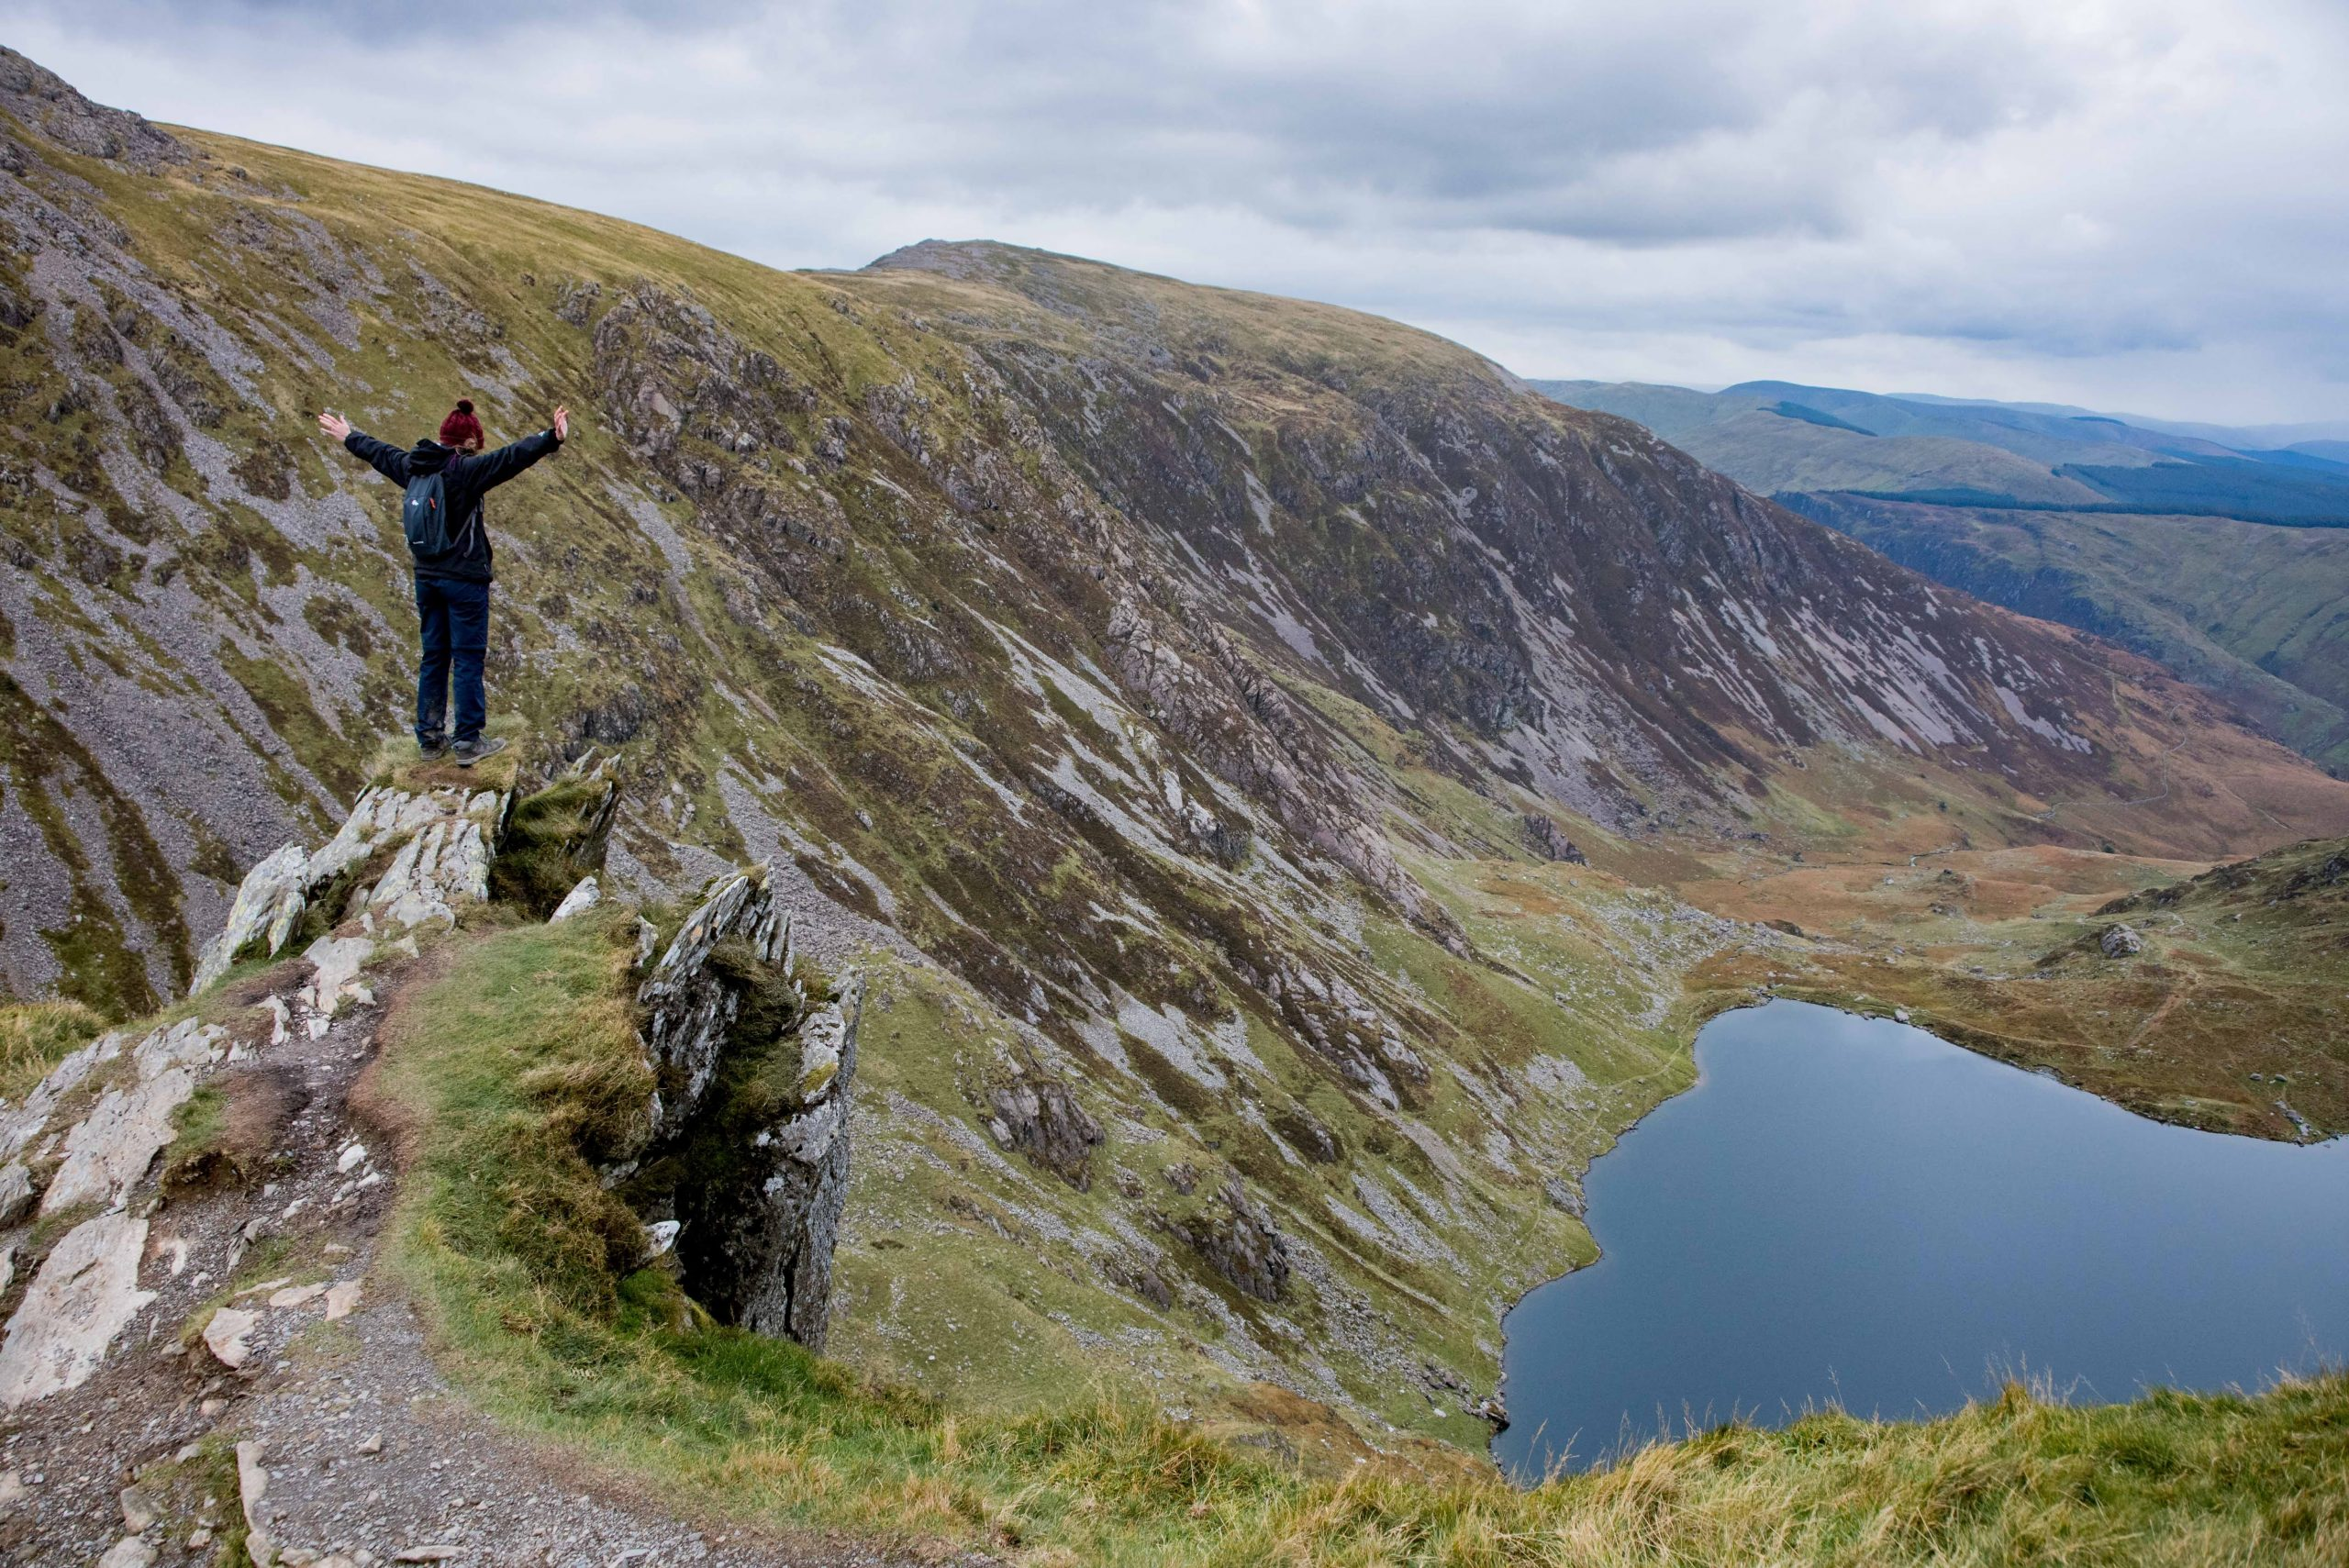 The os explorer ol23 map of cadair idris, suitable for the welsh three peaks challenge.covering a large area of the southern snowdonia national park, many other mountains and routes are included.other highlights of this map include: Hiking Cadair Idris Minffordd Path Wales Passport For Living